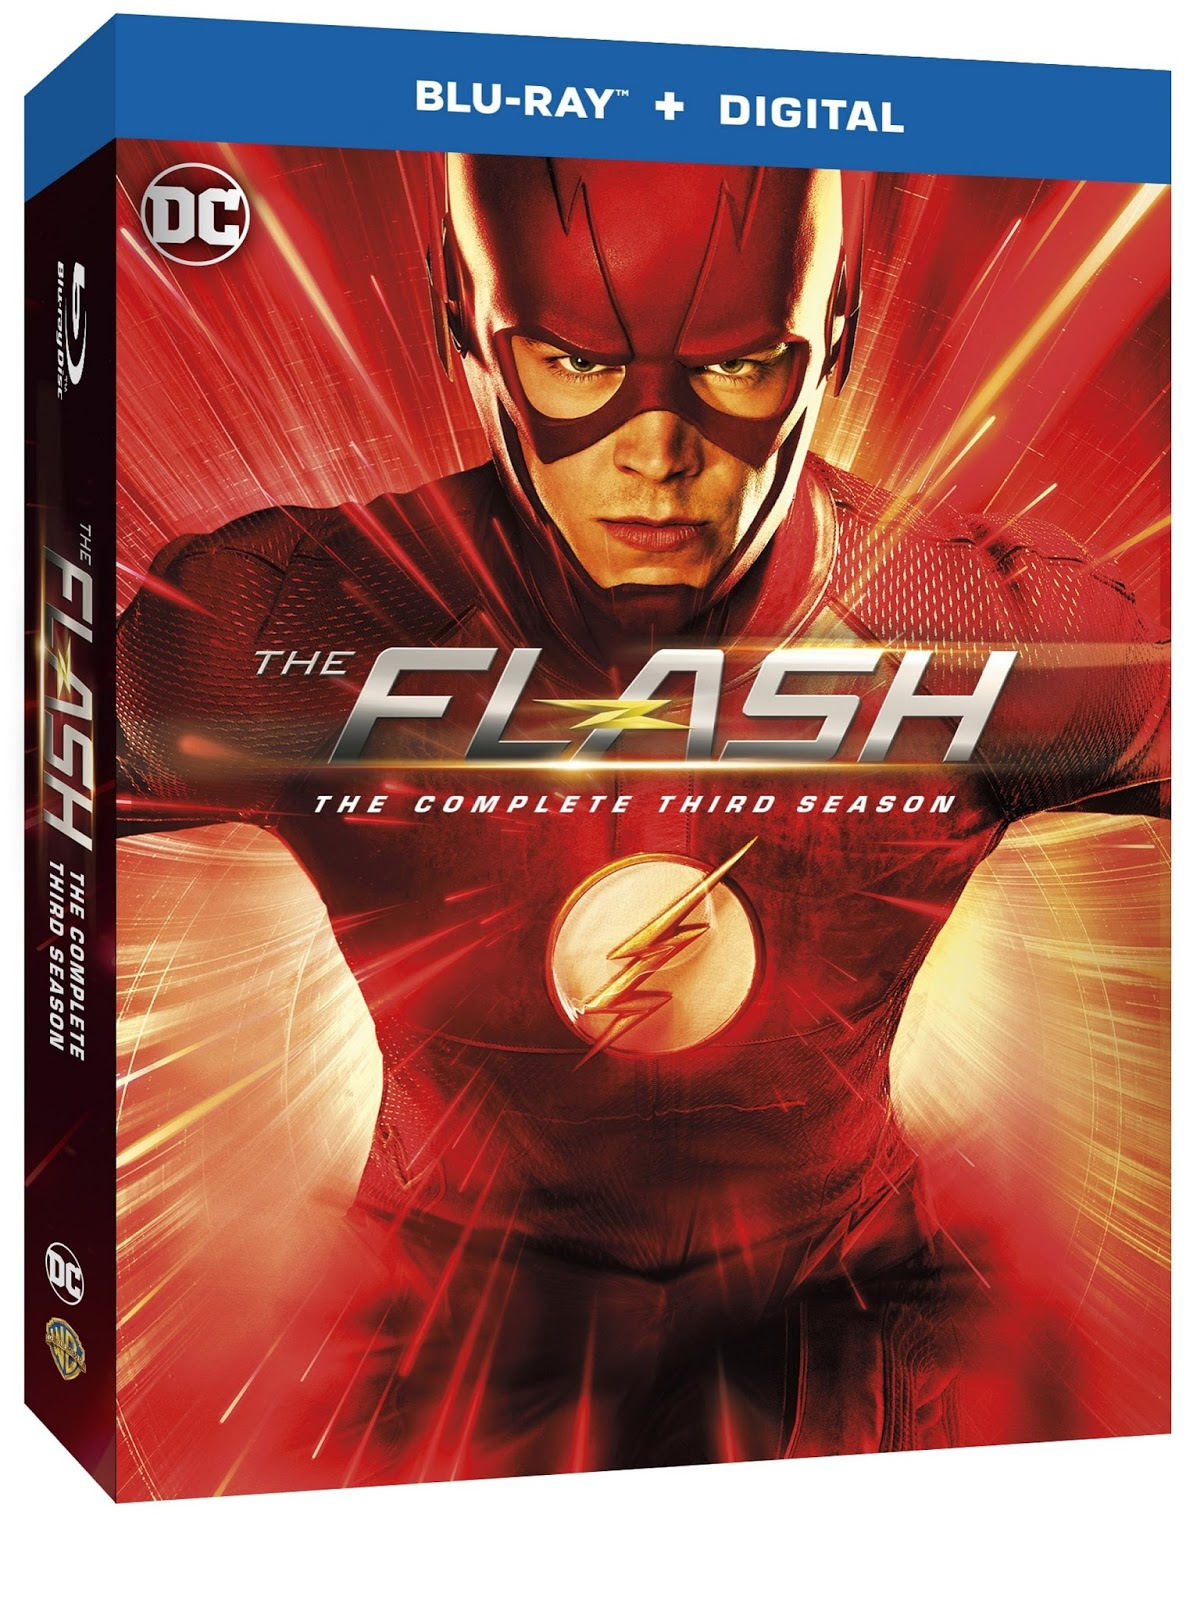 All About TV News: 'The Flash' Season 3 DVD and Blu-ray